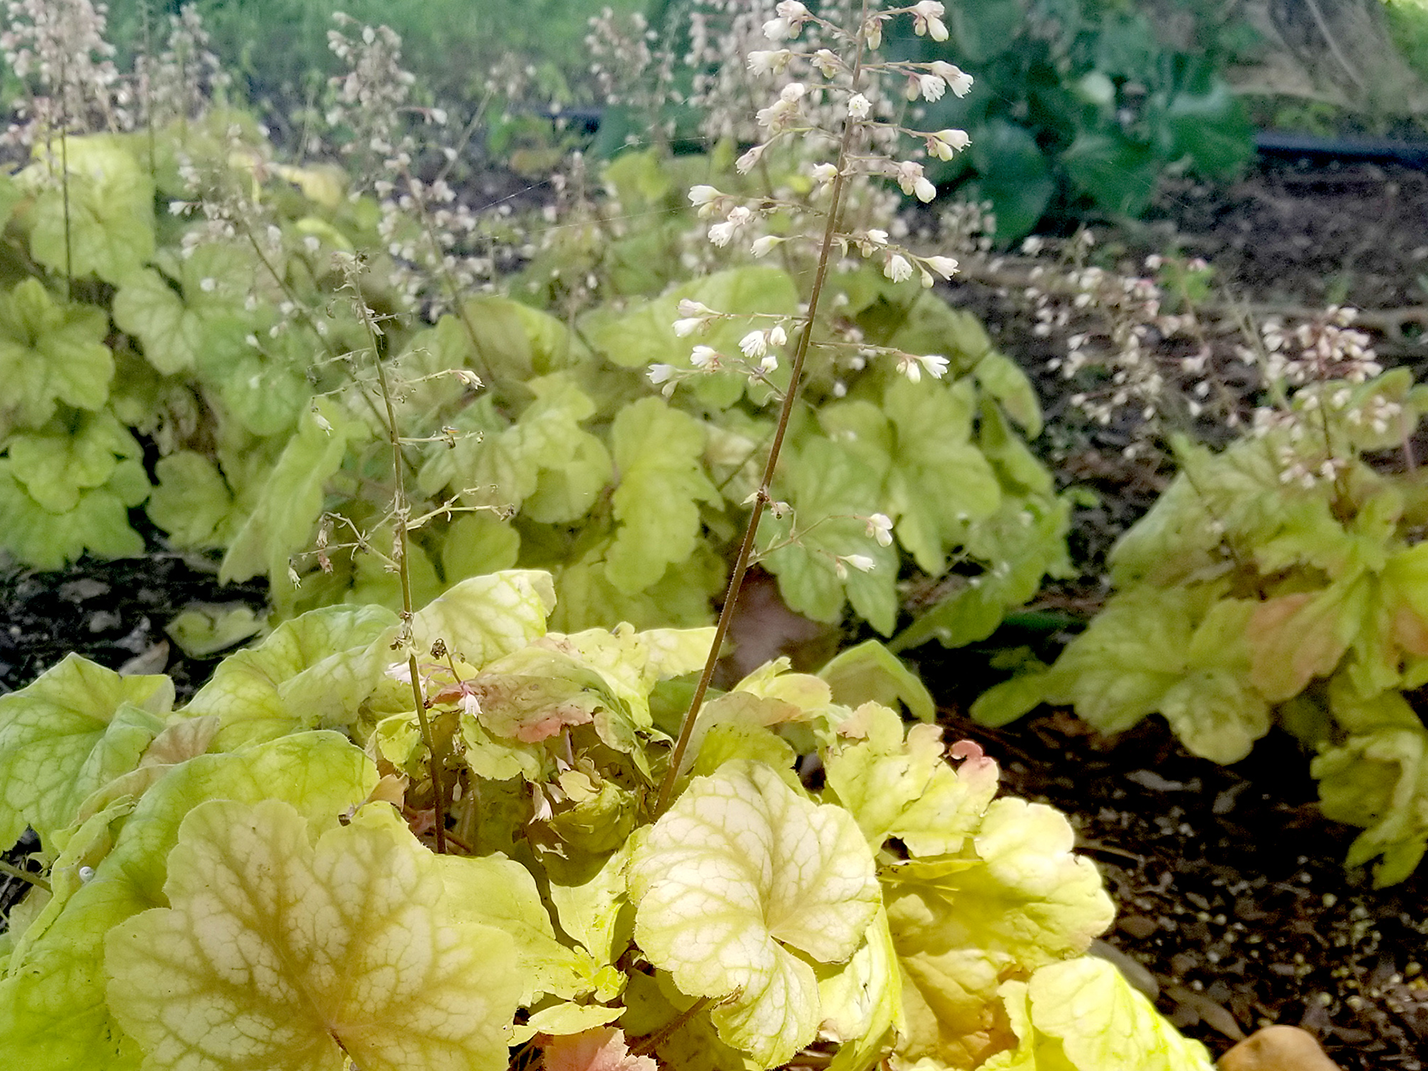 A plant with light green leaves and white flowers on tall stems grows in the shade under a tree.